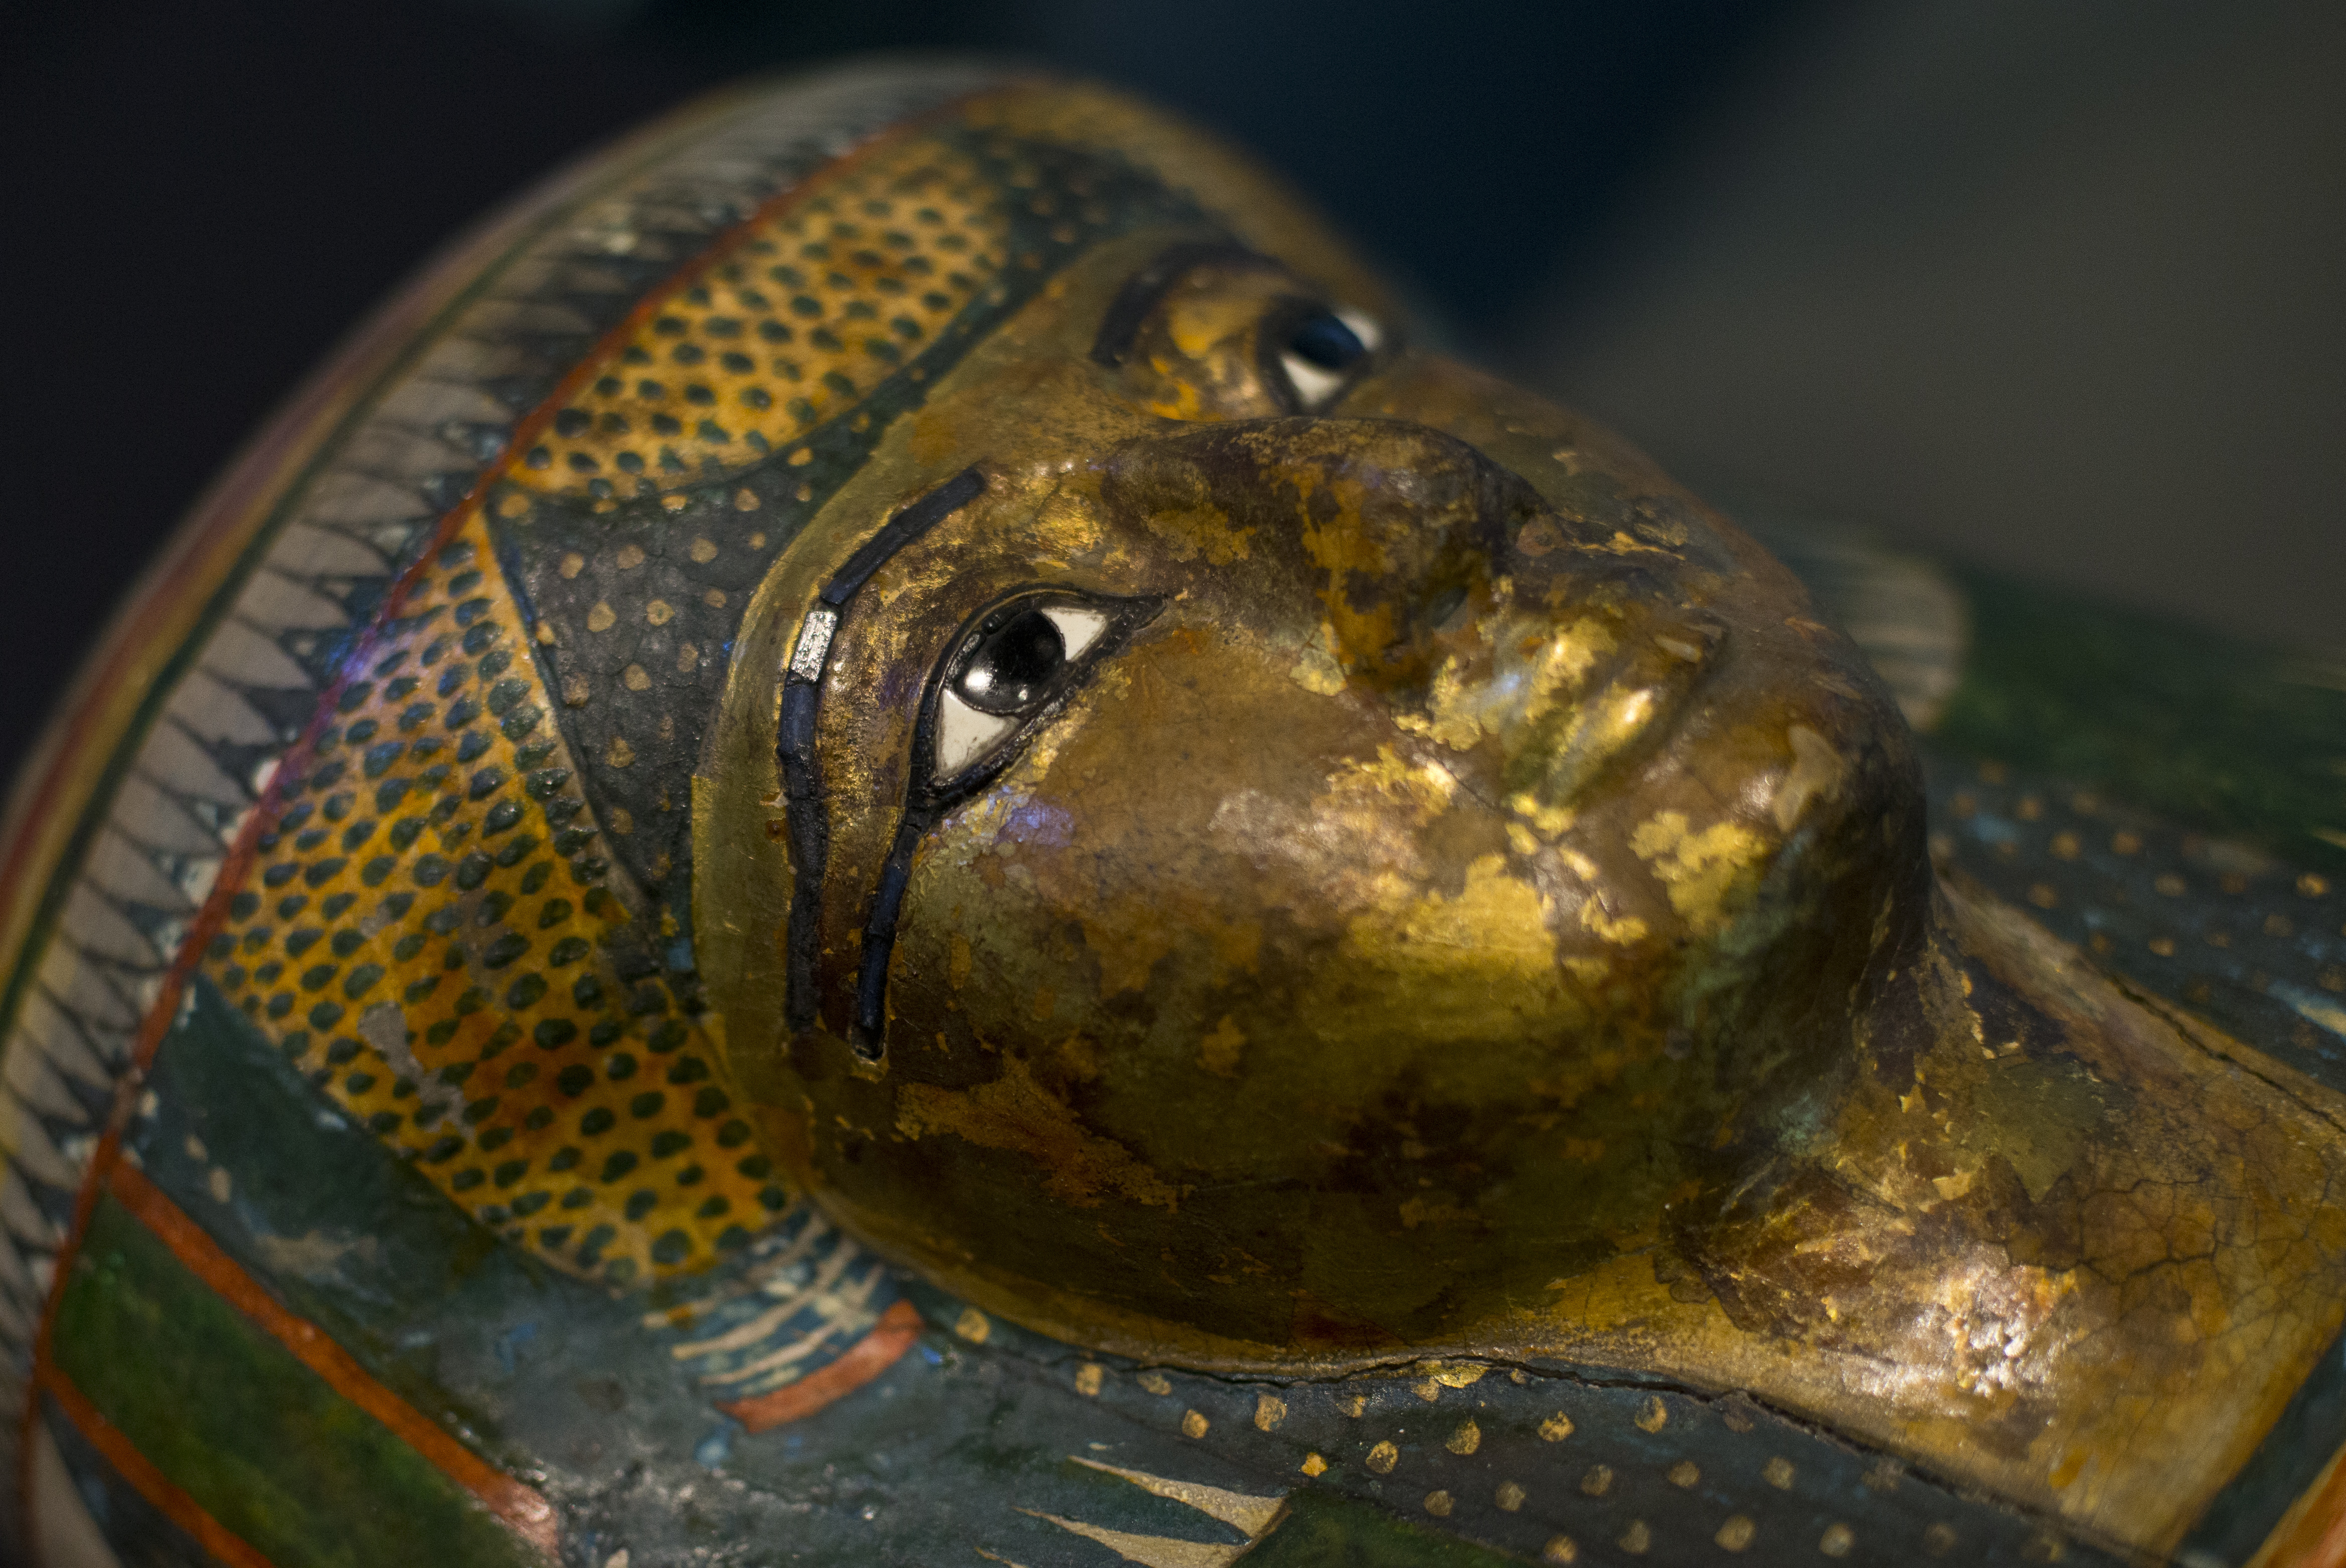 London - Inside view of ancient mummies - Pictures - CBS News